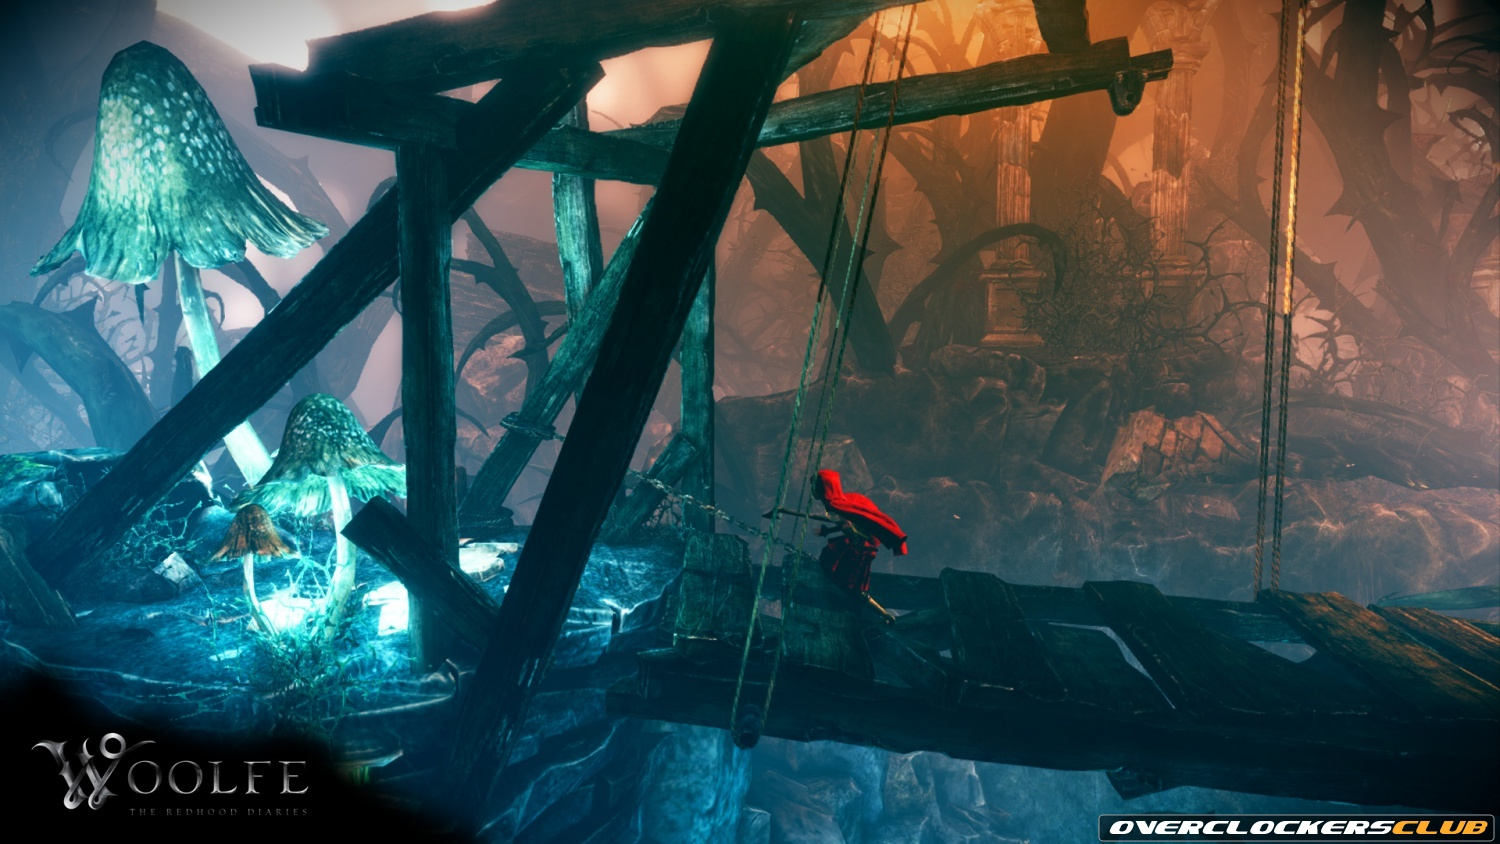 Read dark fairy tale platformer woolfe: the redhood diaries coming to